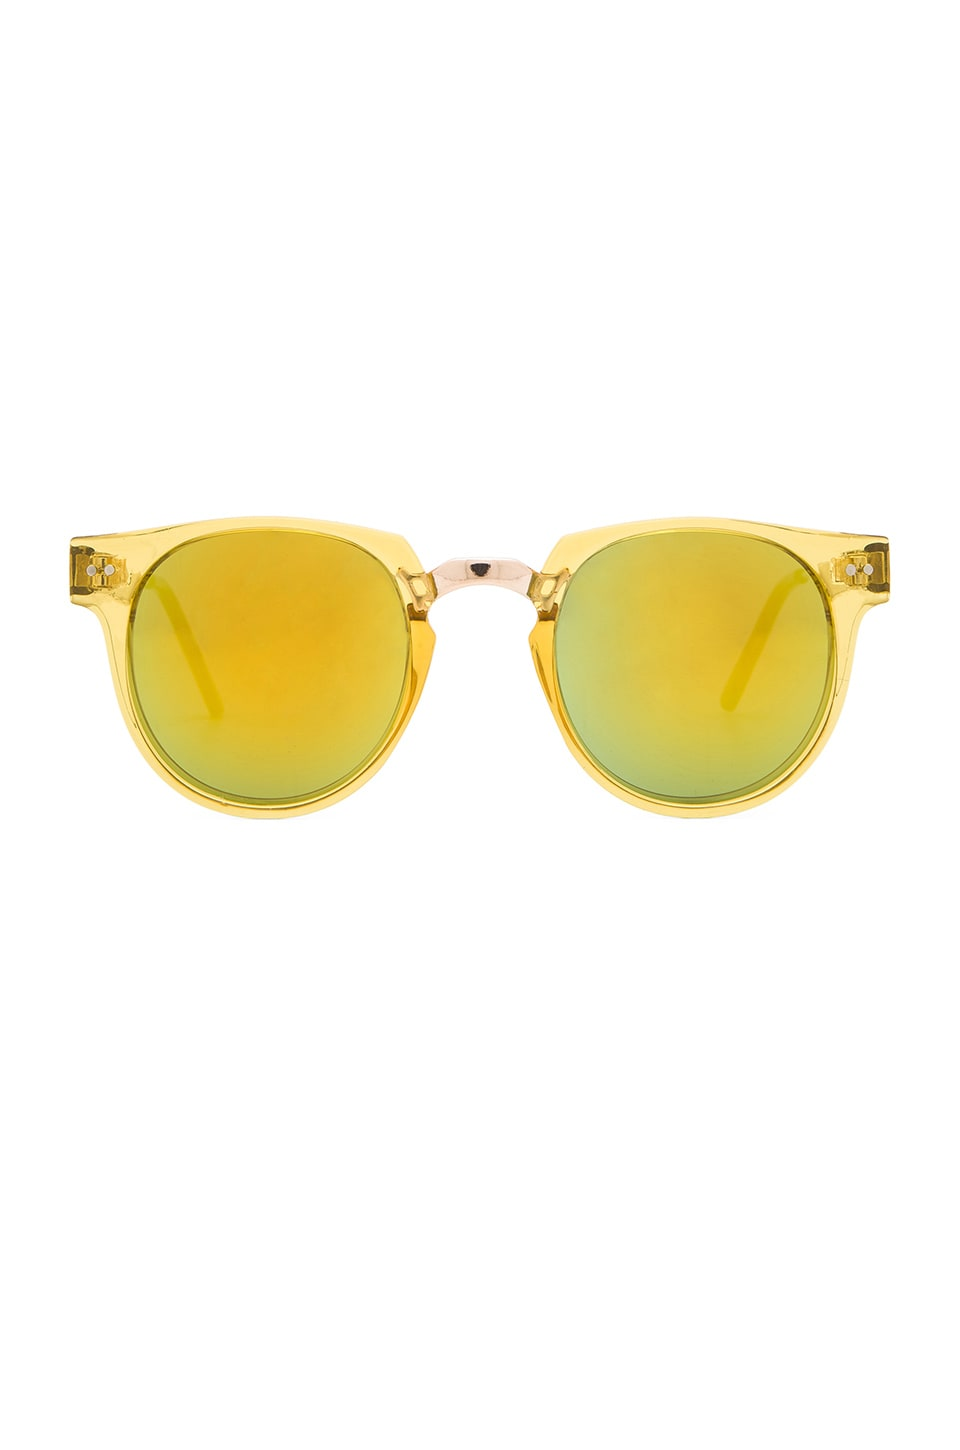 Spitfire Teddy Boy 2 in Yellow & Gold Mirror